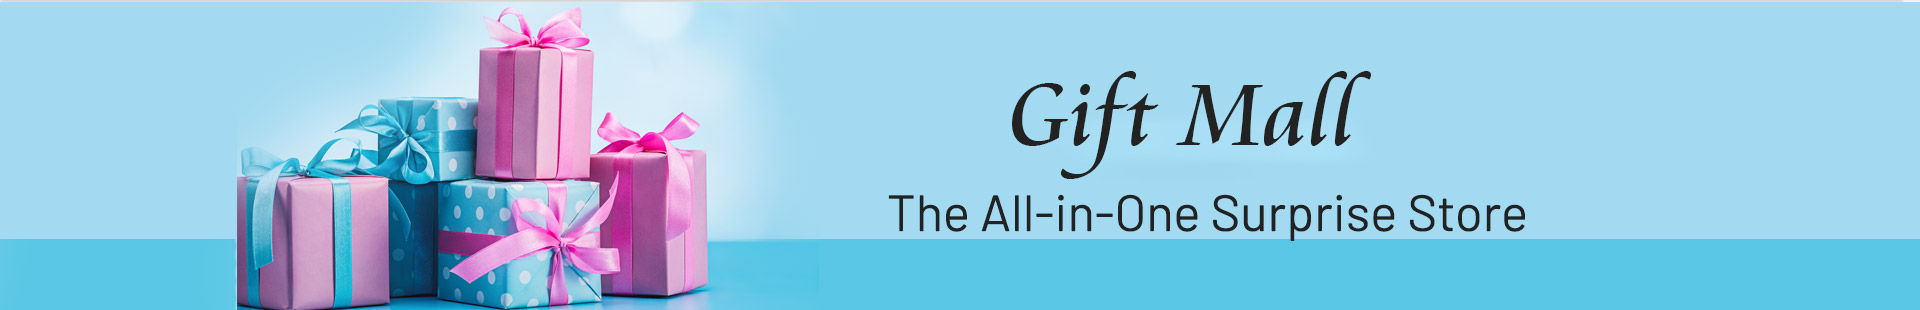 find gifts at one place